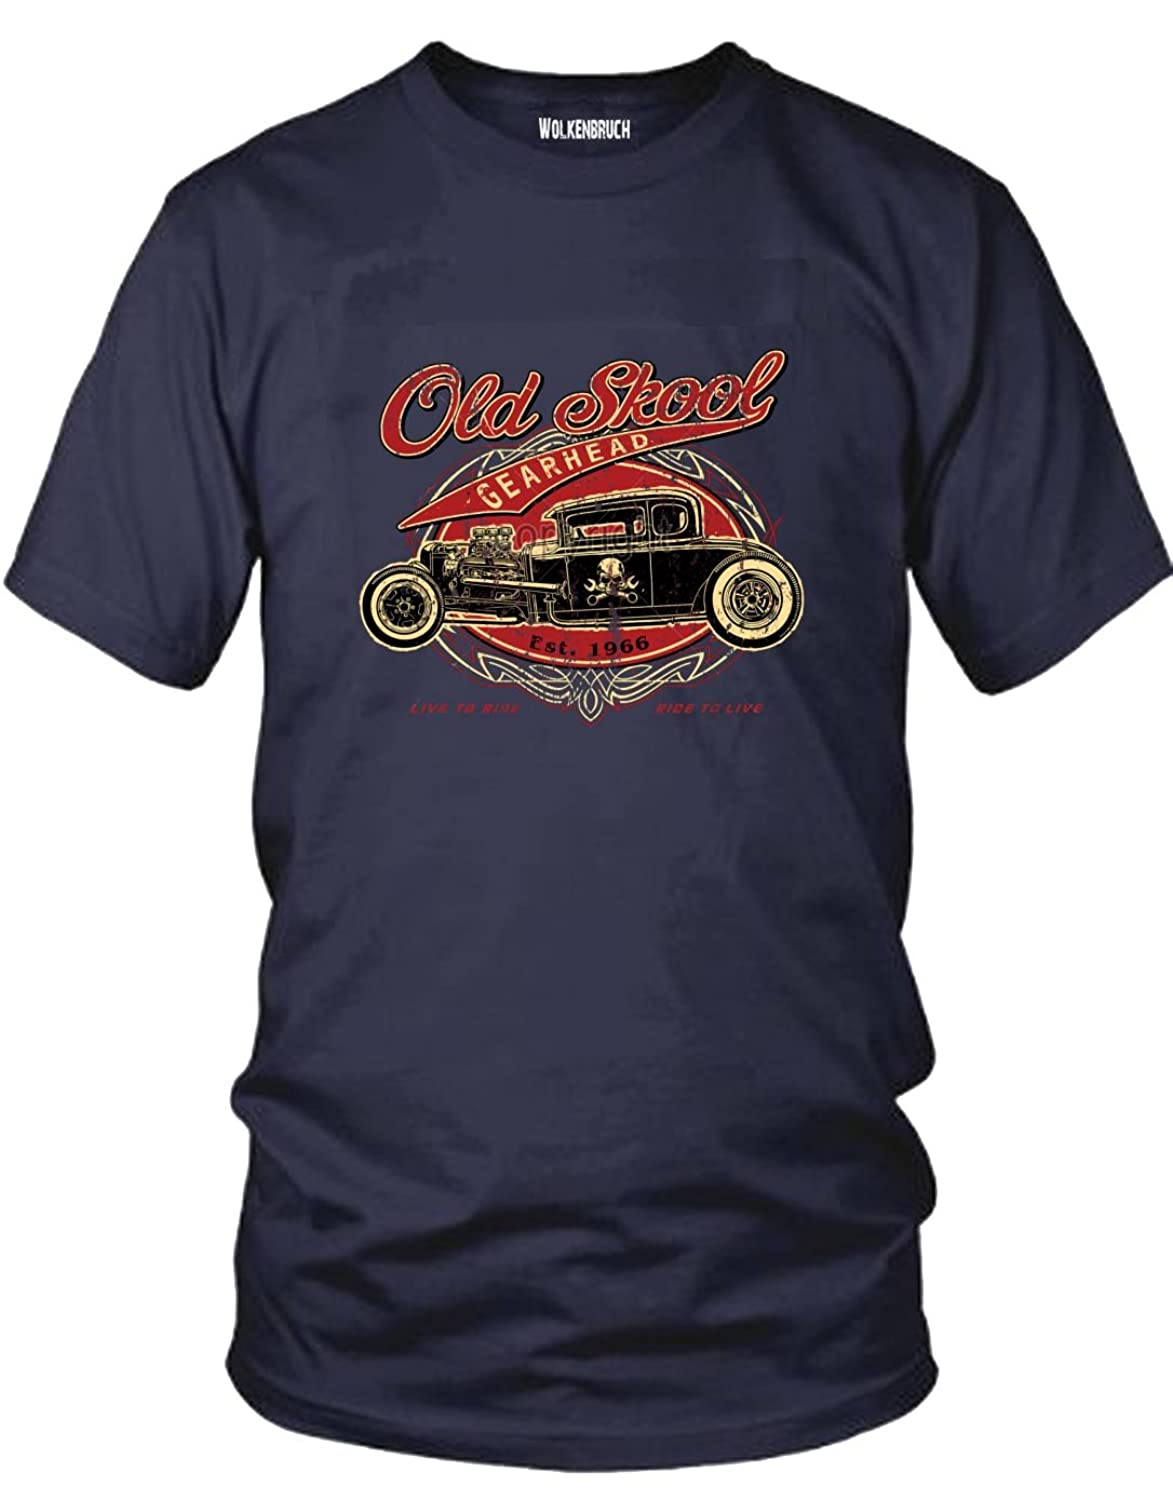 Wolkenbruch? T-Shirt Old Skool Hot Rod, Geahrhead Ride to Live, Different Colours, Size M bis 5XL